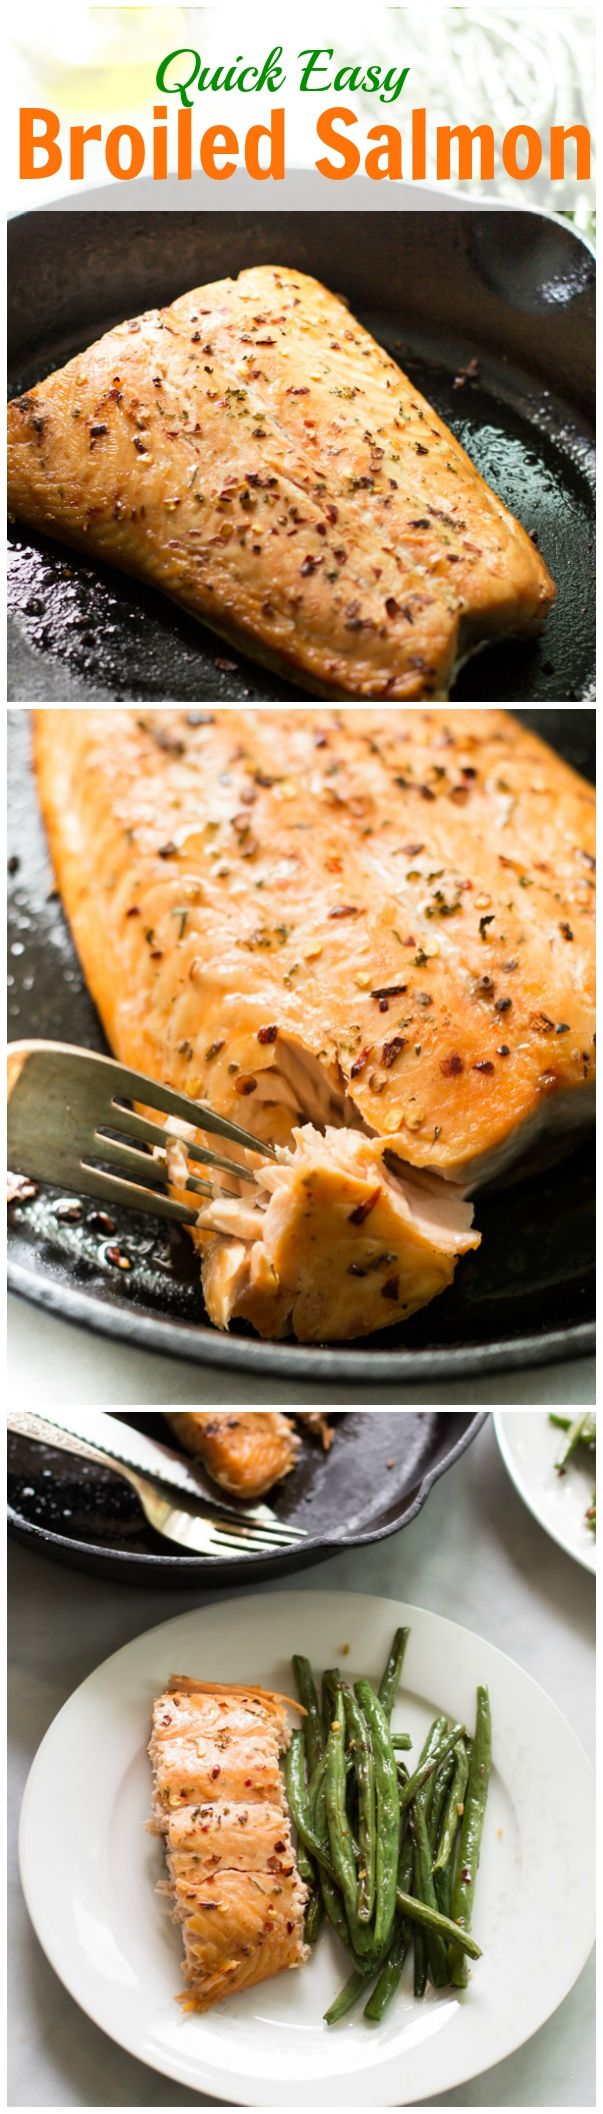 Quick Easy Broiled Salmon